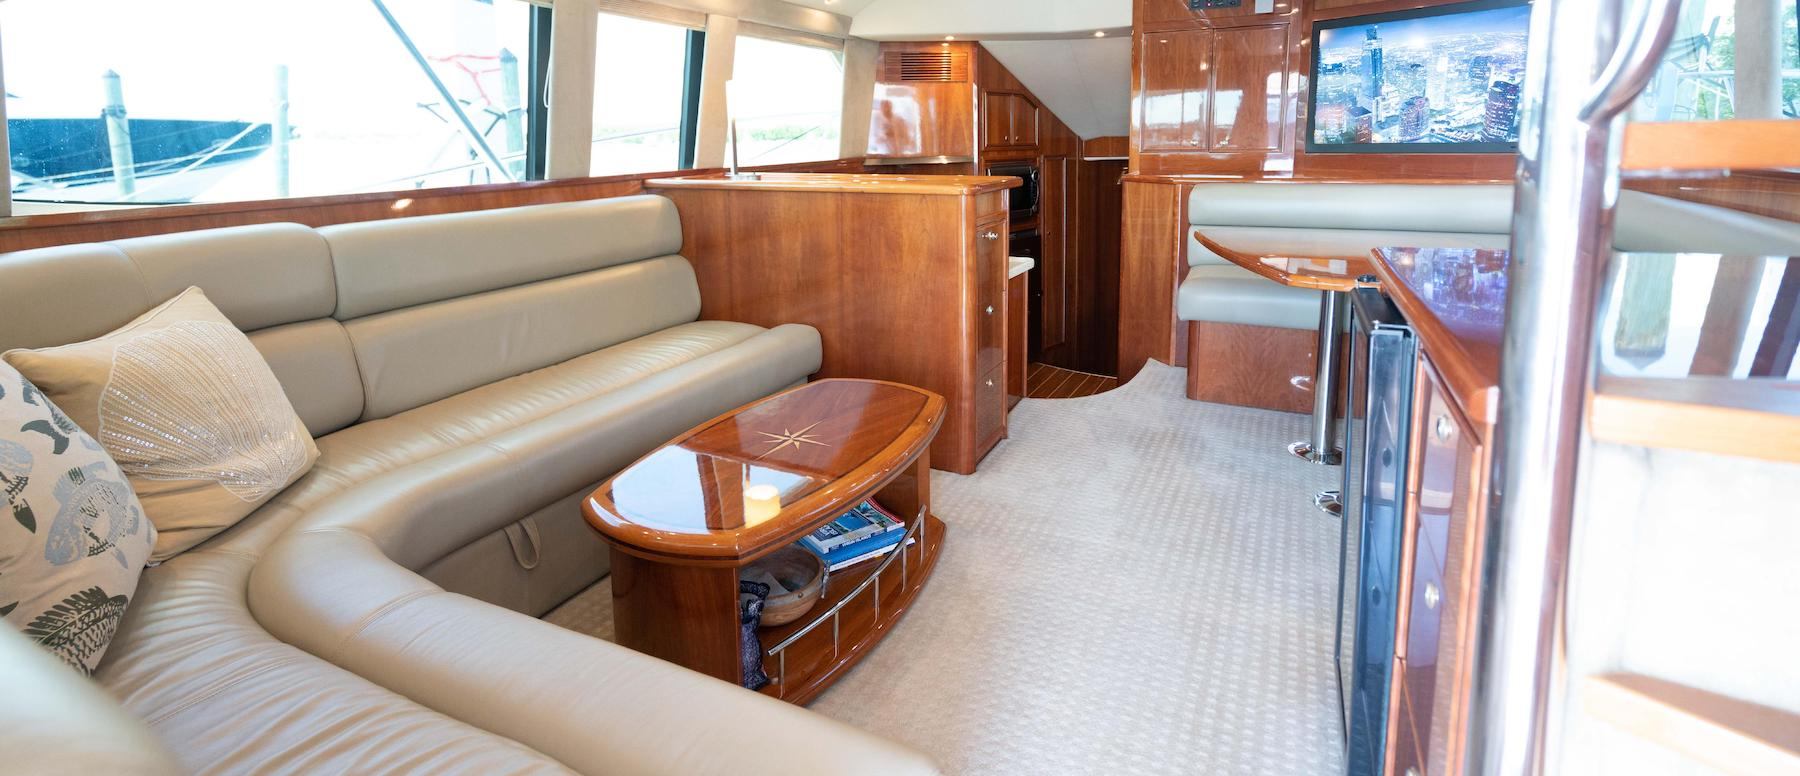 51' Riviera 2008 ST ONE Sportfish Salon